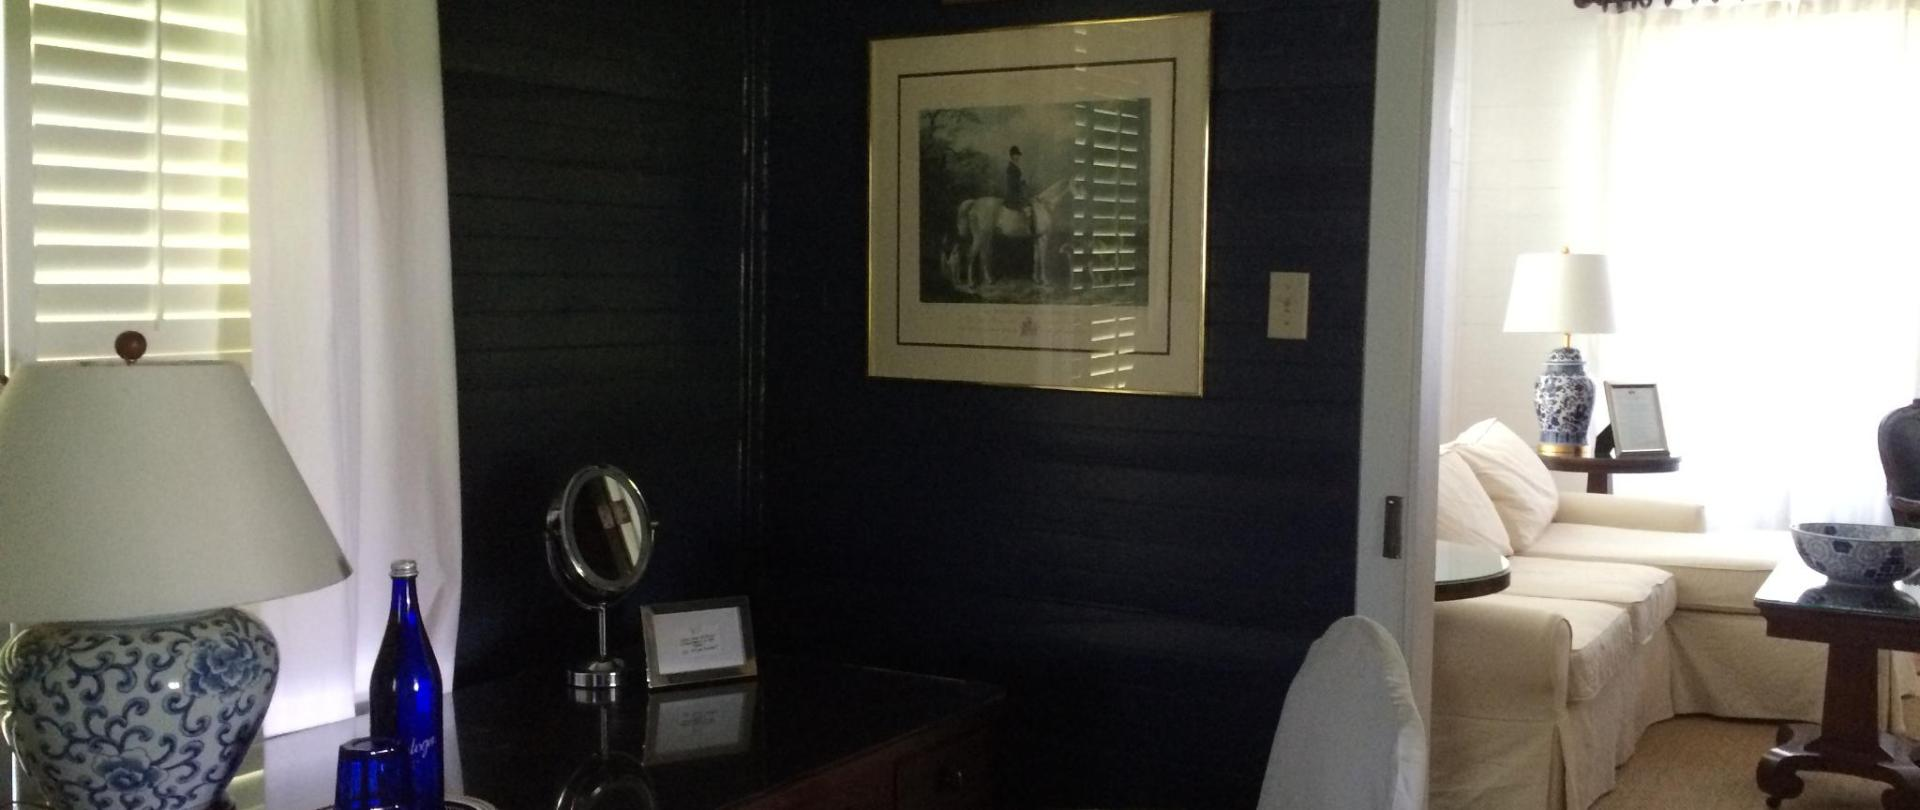 farmhouse - blue bedroom desk thru living room.jpg